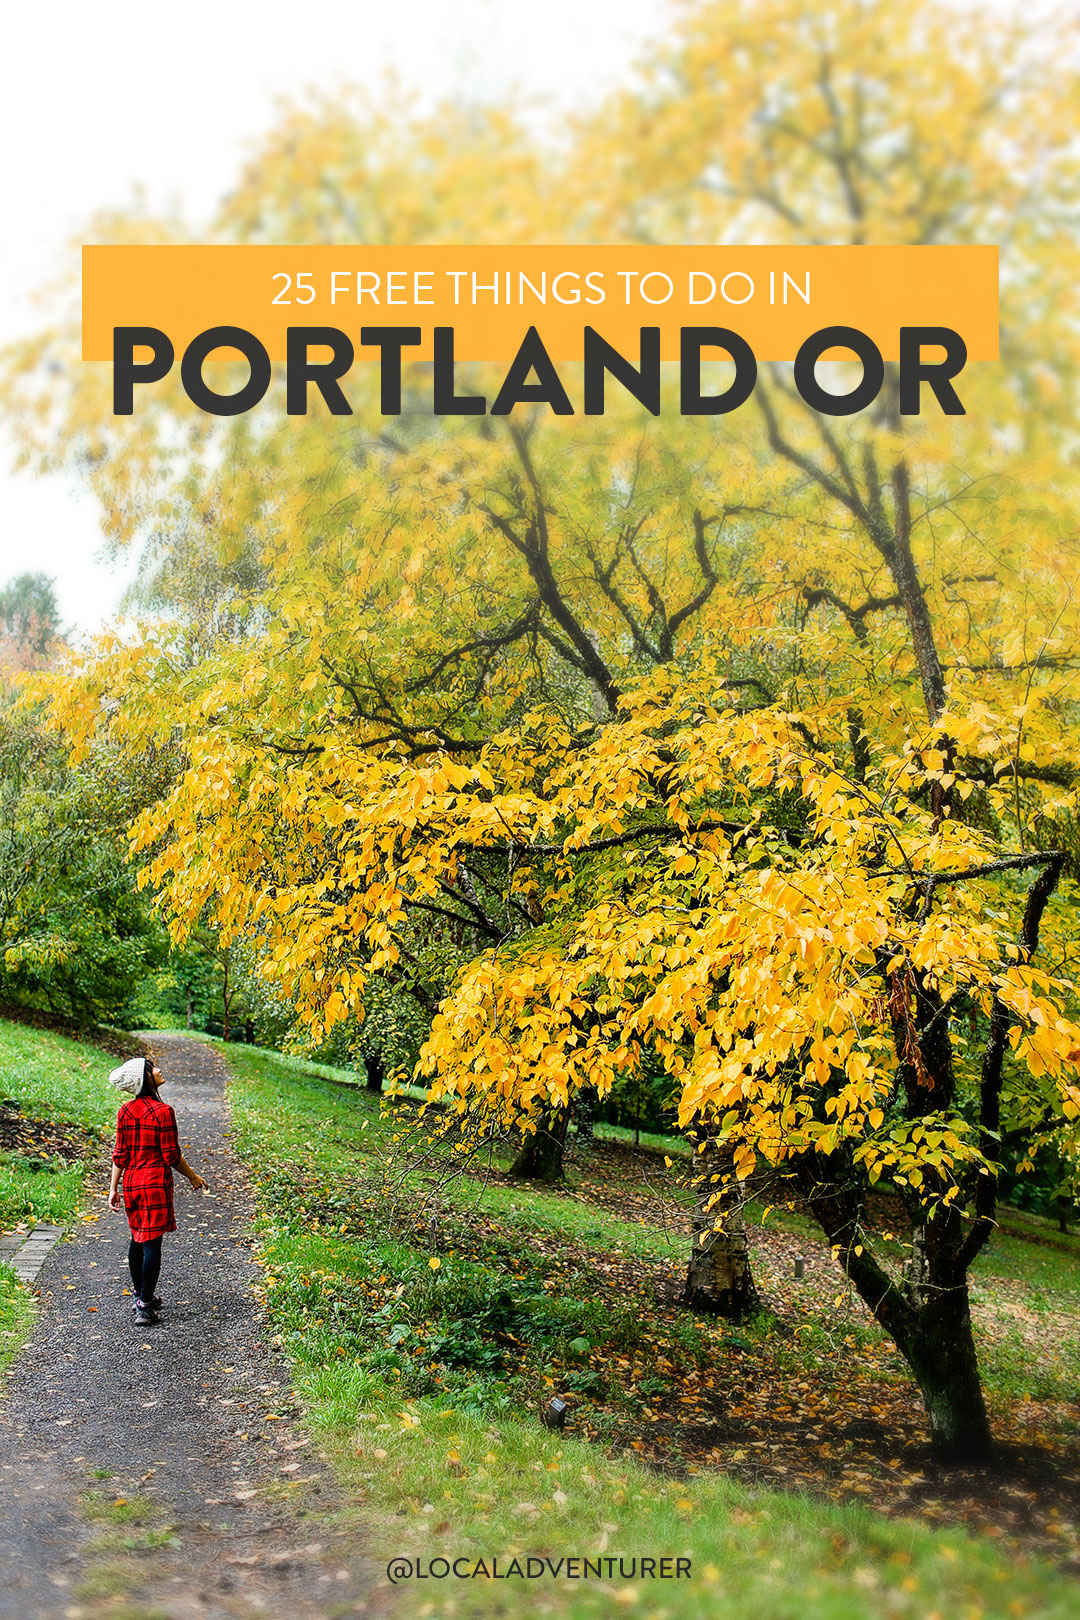 25 Free Things to Do in Oregon - Free Things to do in Portland This Weekend and Cheap Things to do in Portland // localadventurer.com